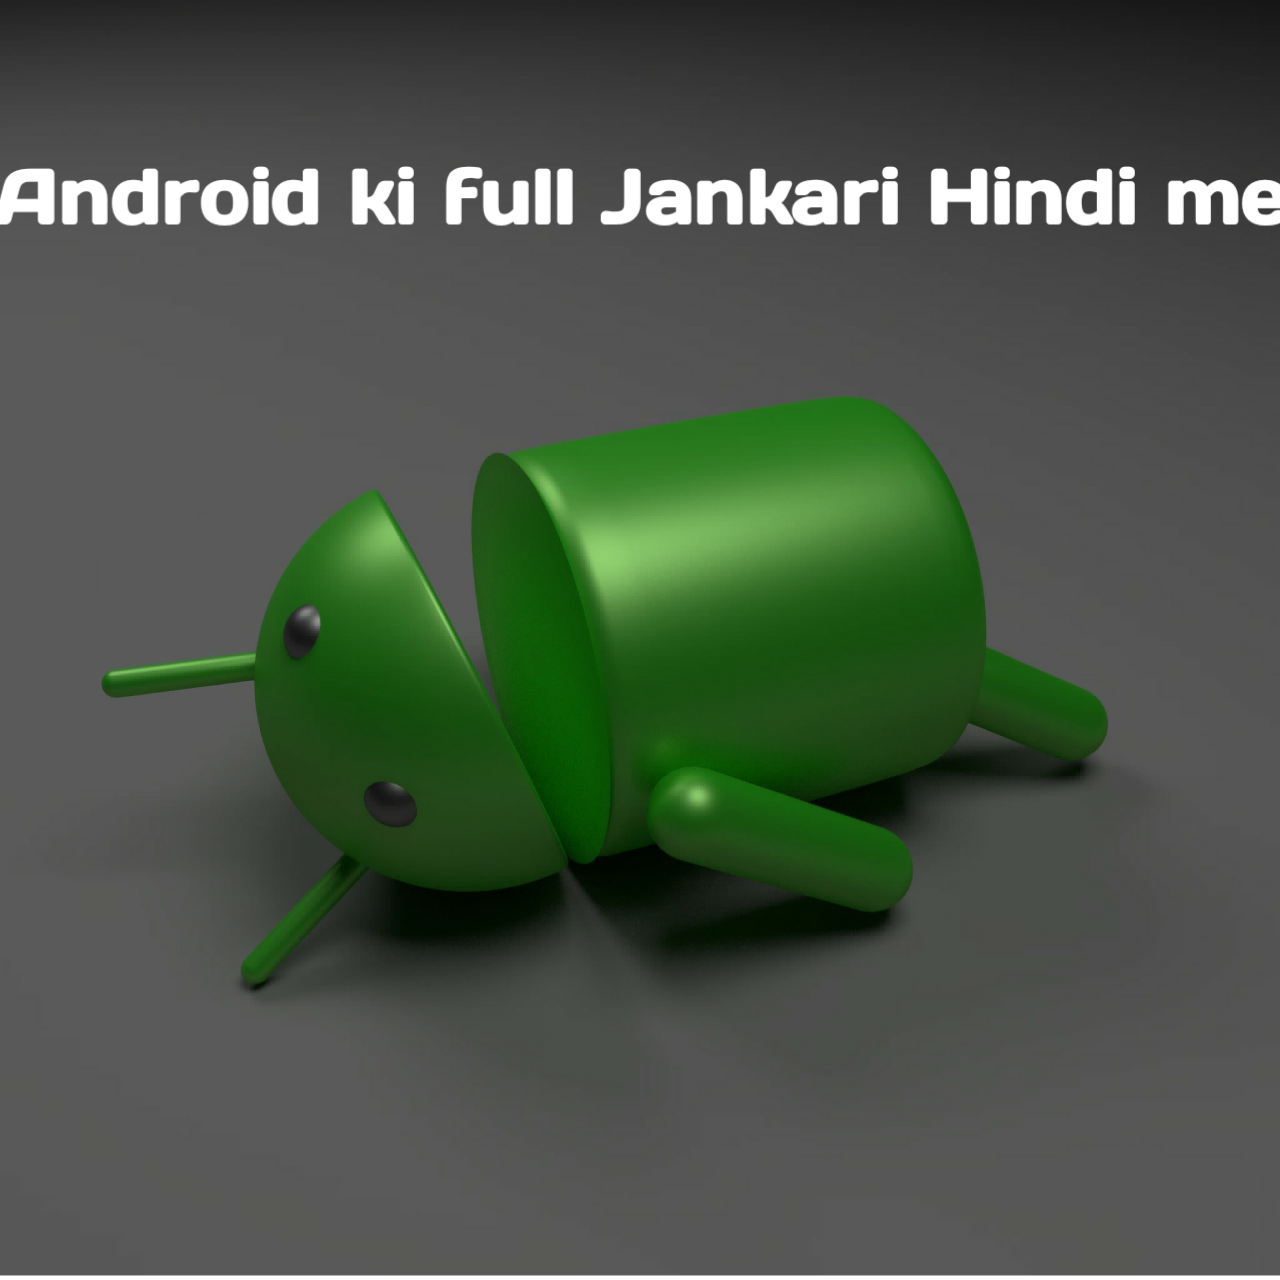 Meaning of android in hindi I android kya hota hai?